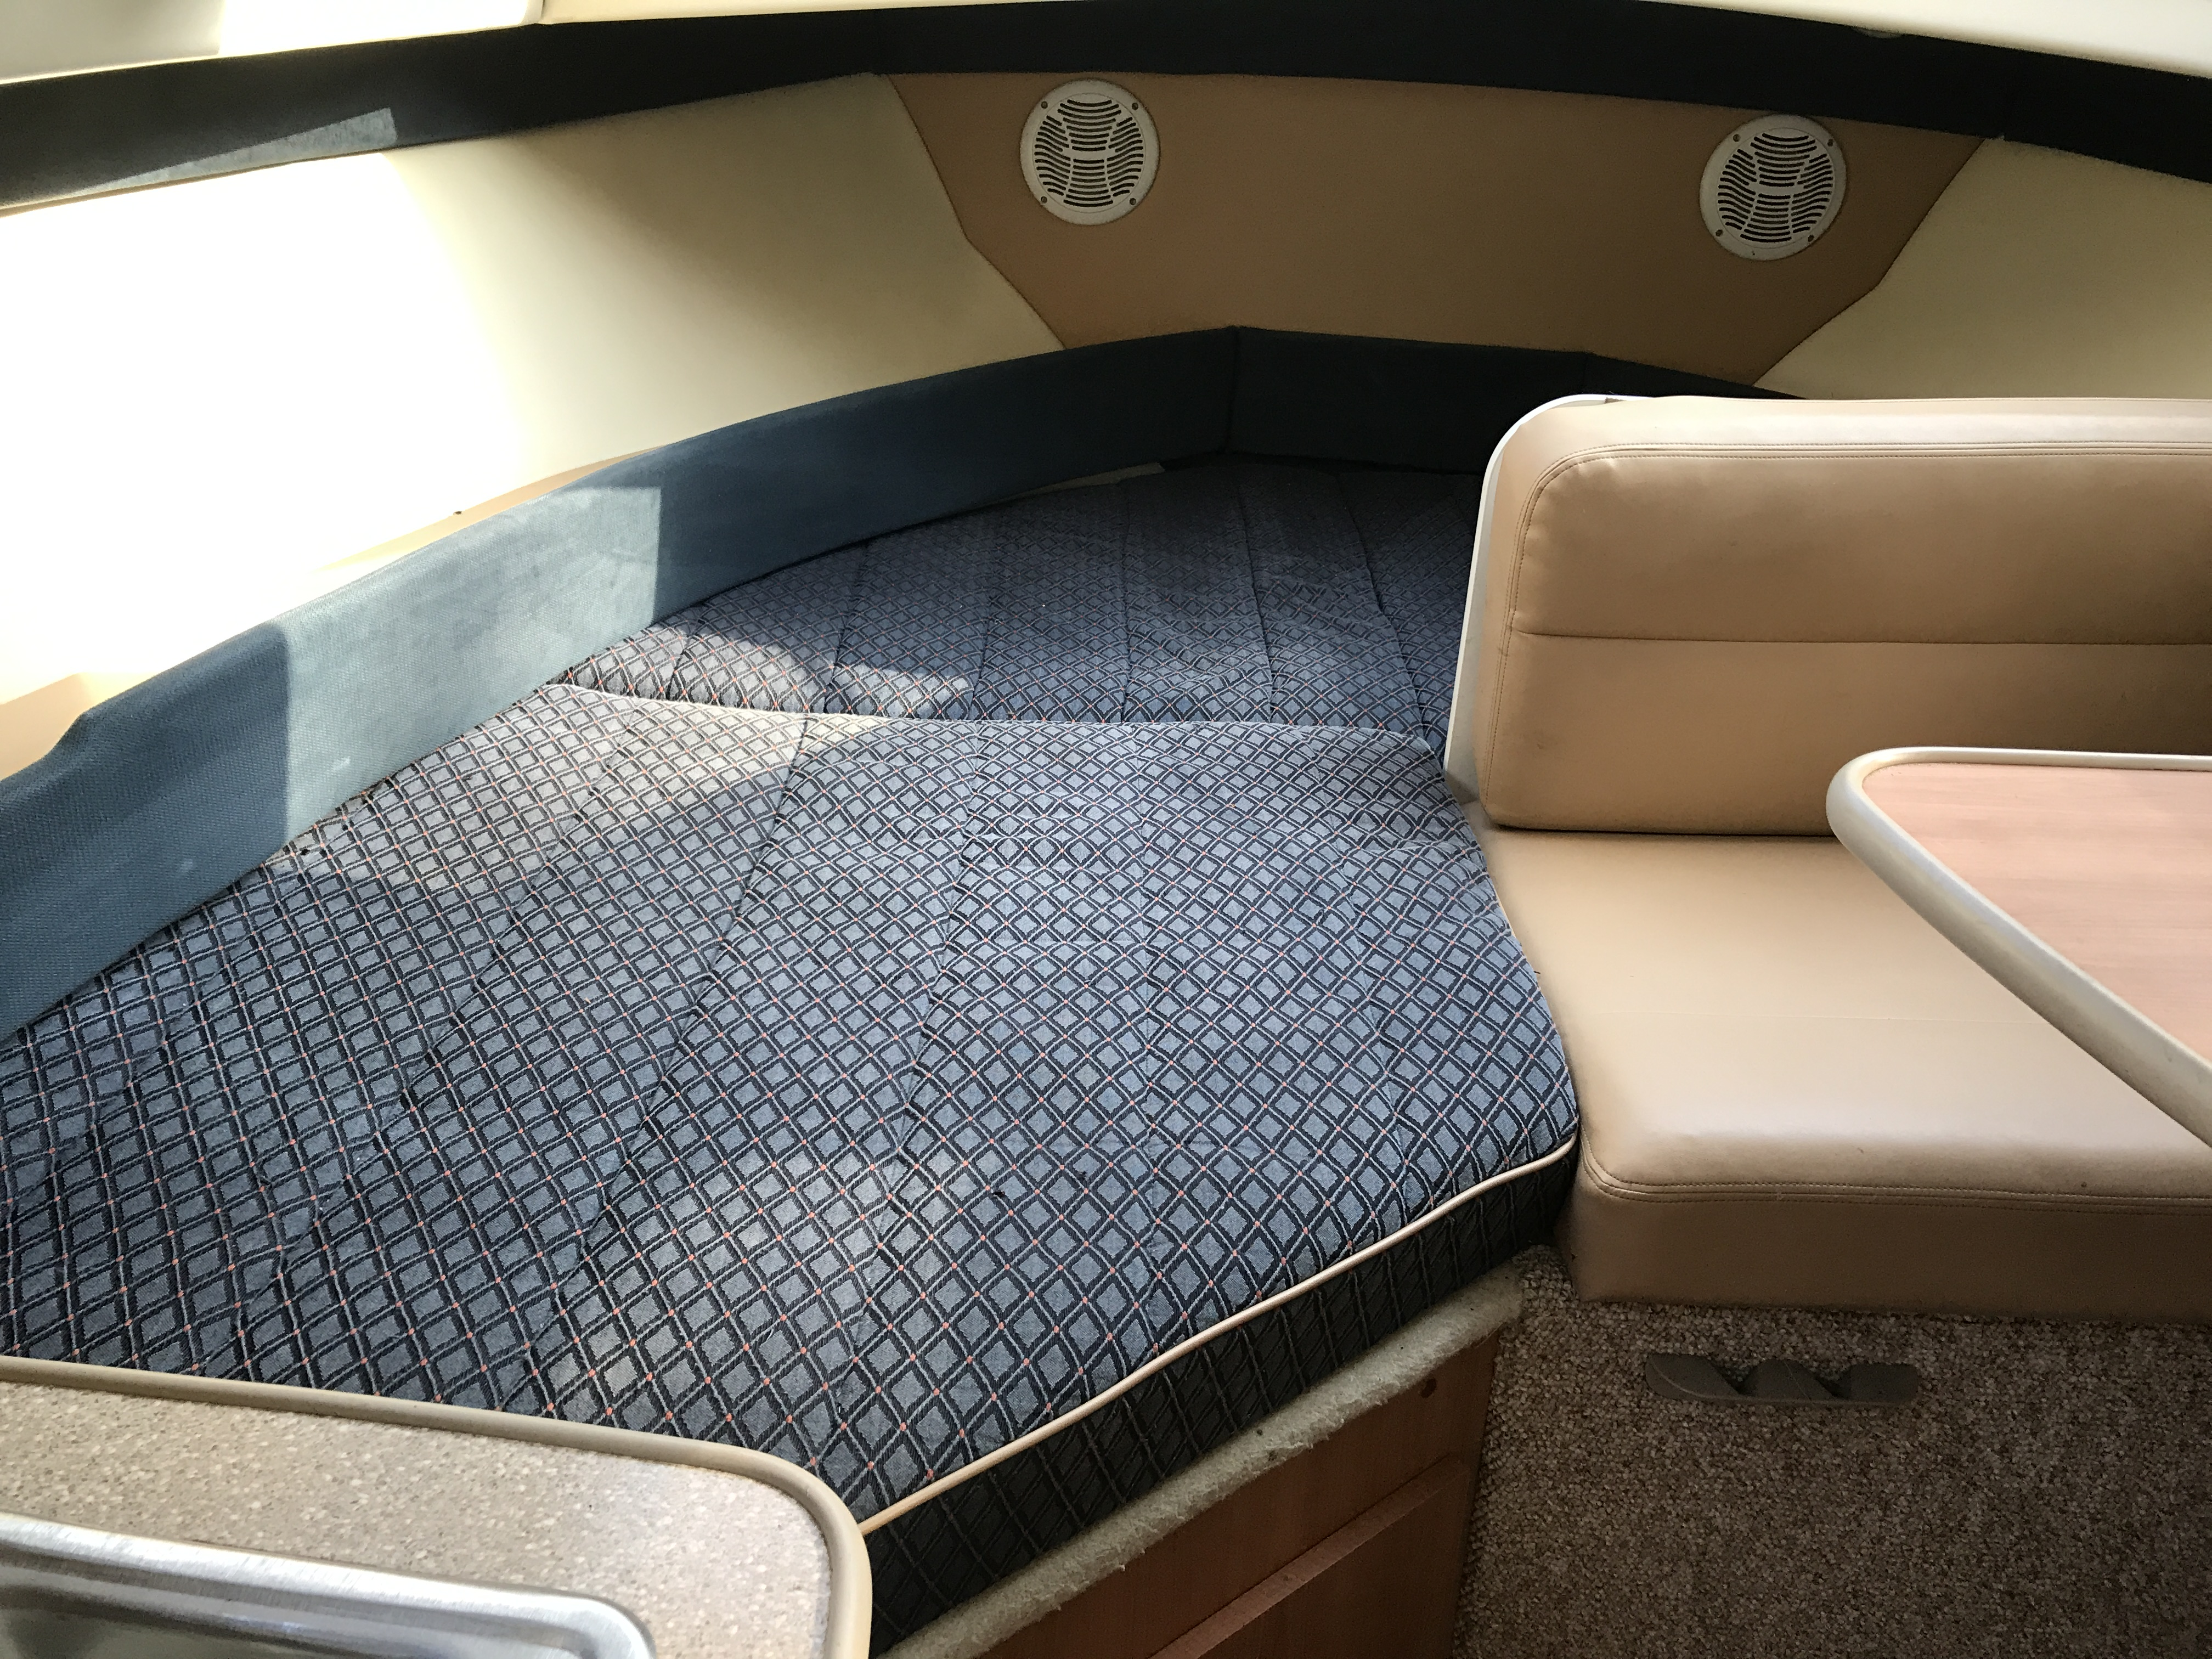 Bayliner Discovery 246 EC - like new cushions throughout